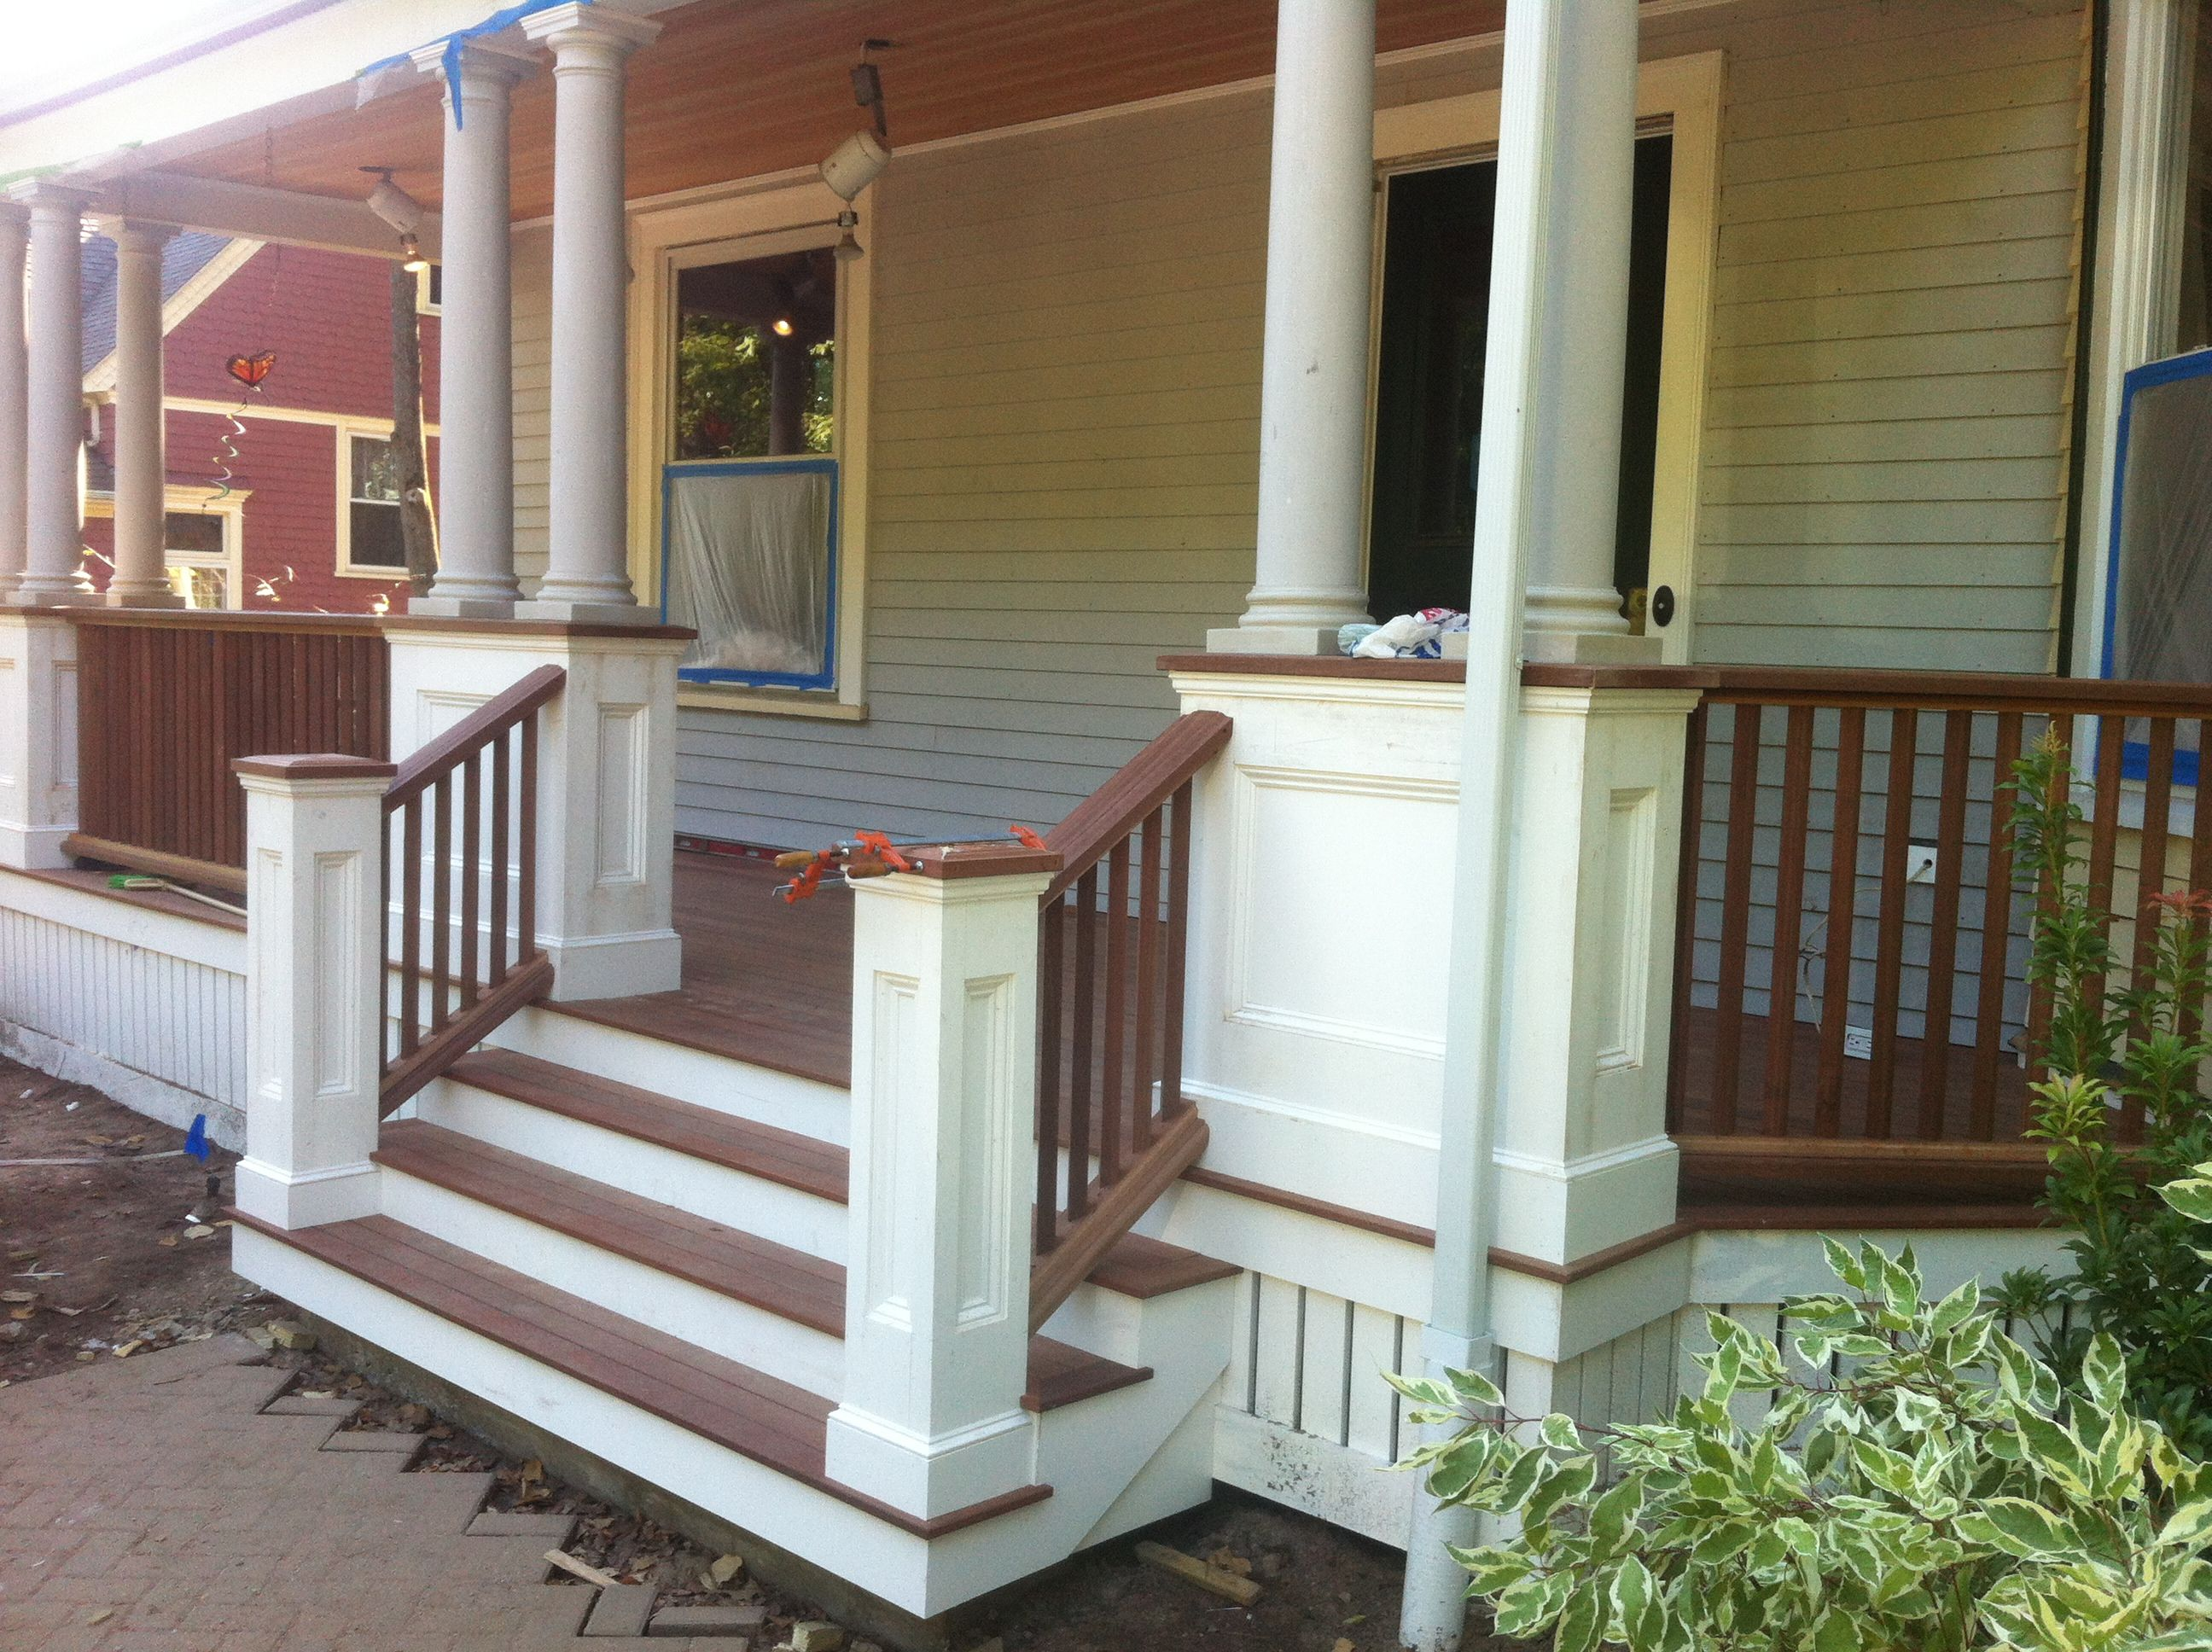 Best Ideas About Front Porch Stairs On Pinterest Front Porch - Home porch designs